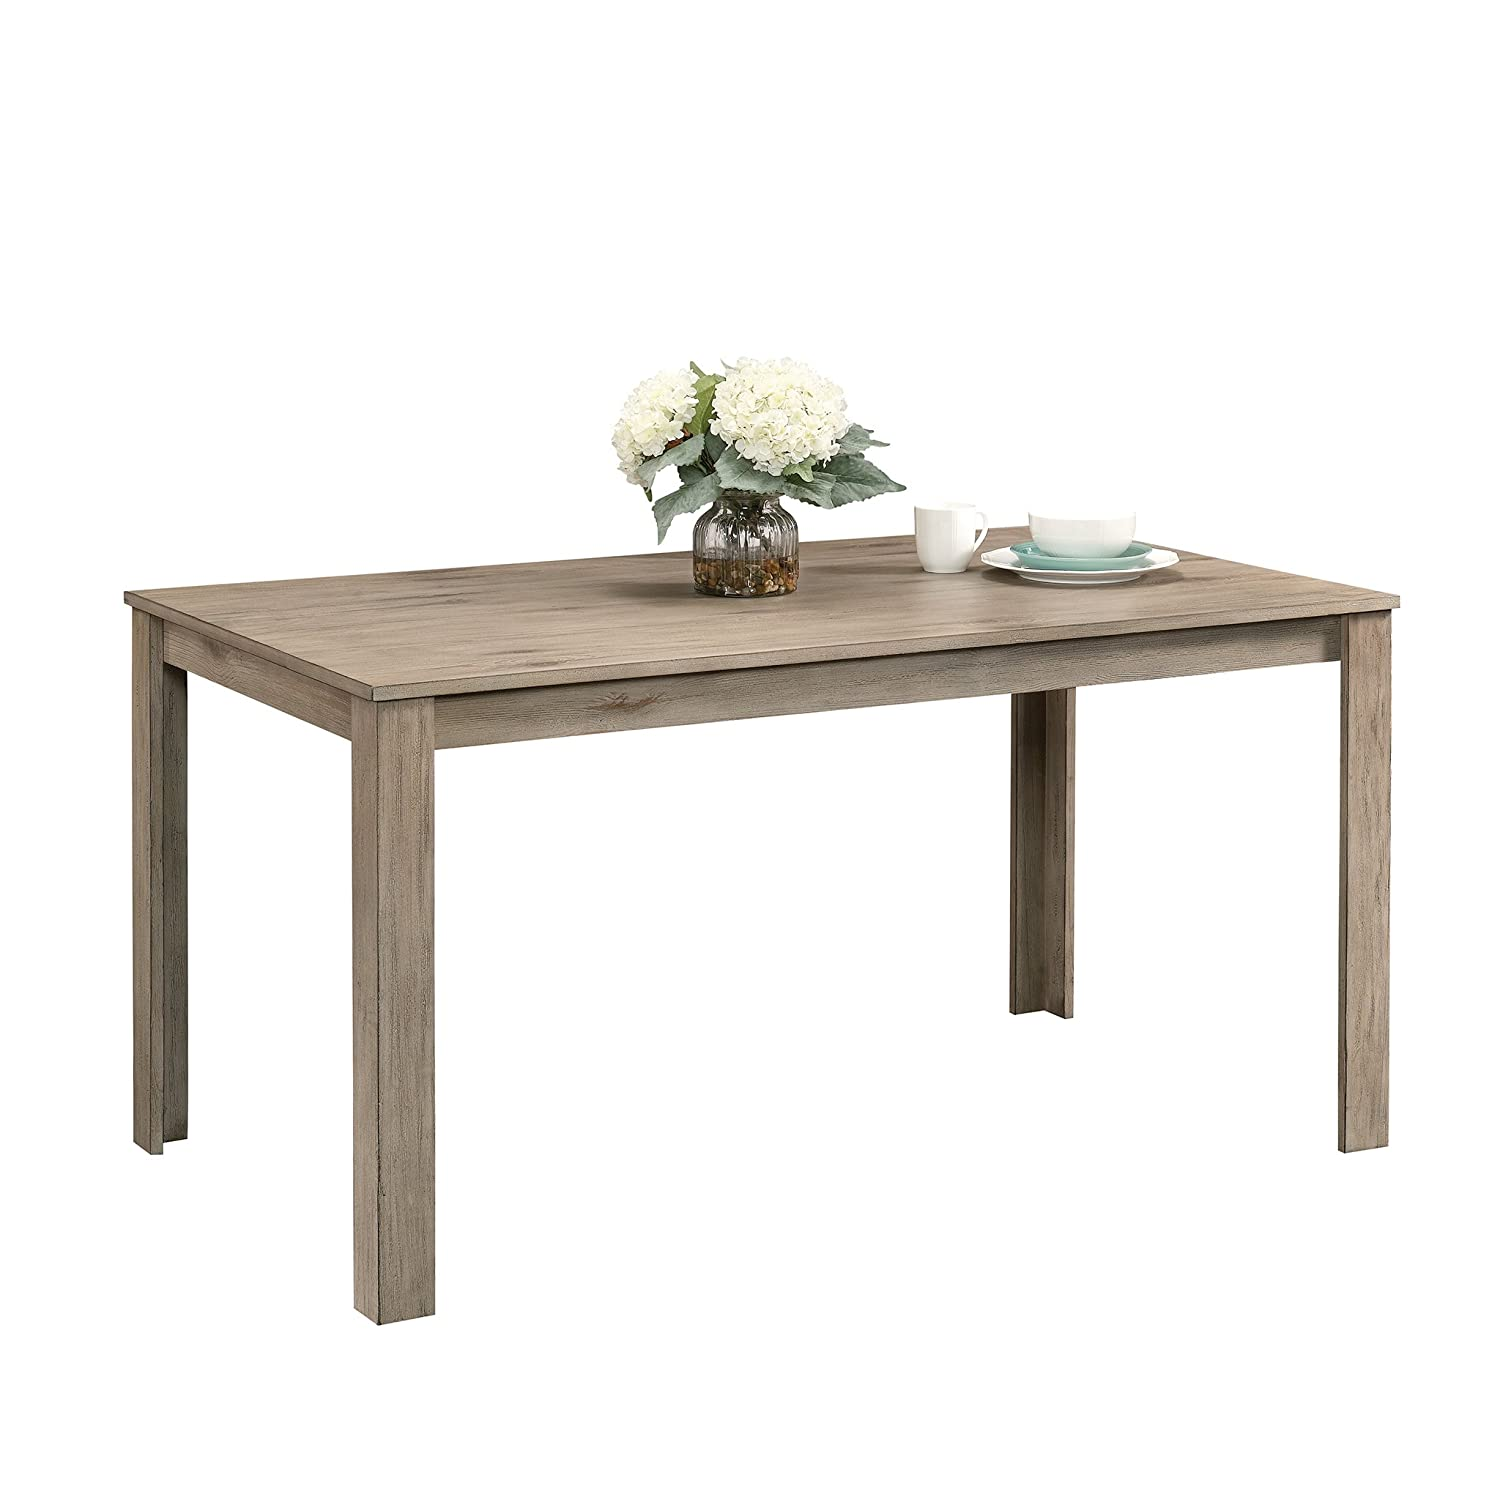 Sauder New Grange Dining Table, White Pine finish